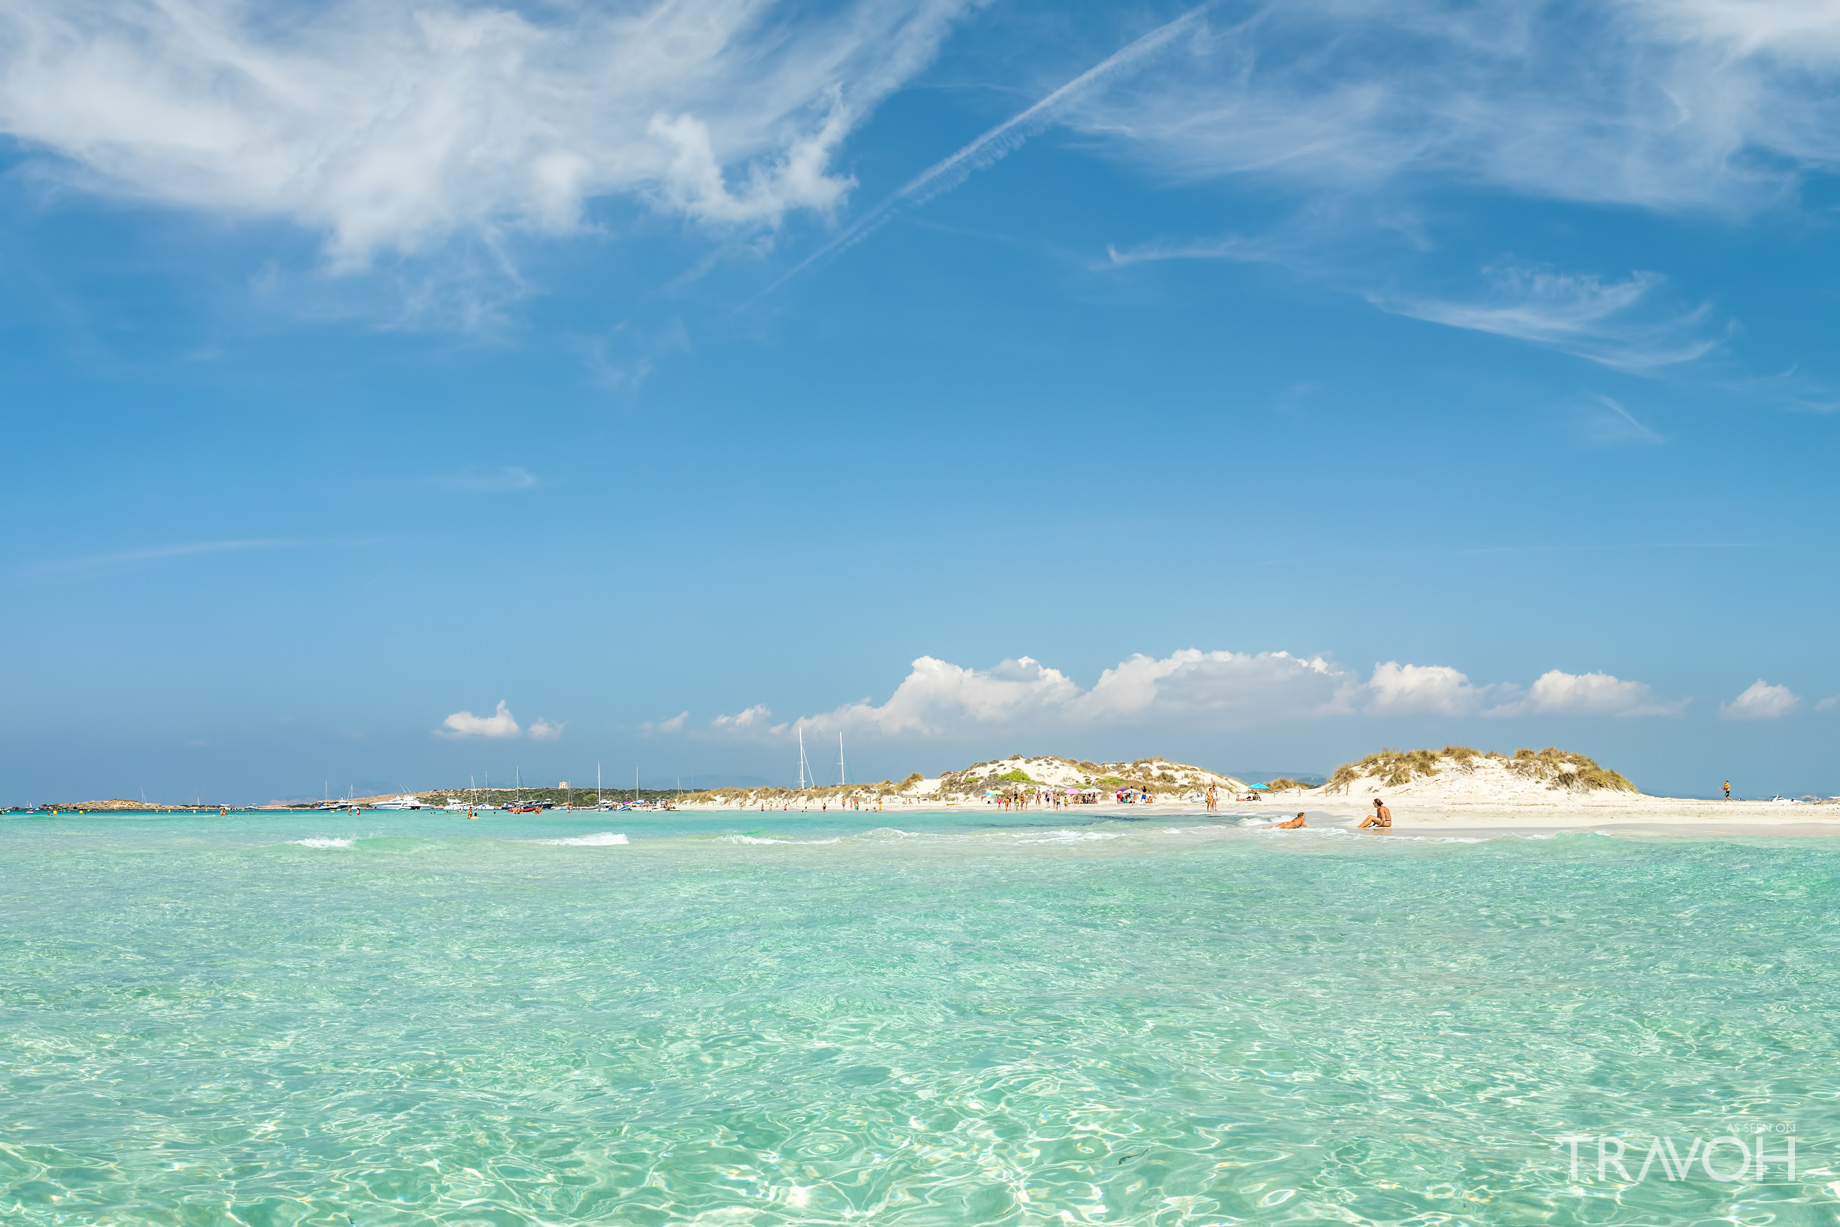 Yachting the Mediterranean - Relax and Unwind on the Idyllic Island of Formentera, Spain